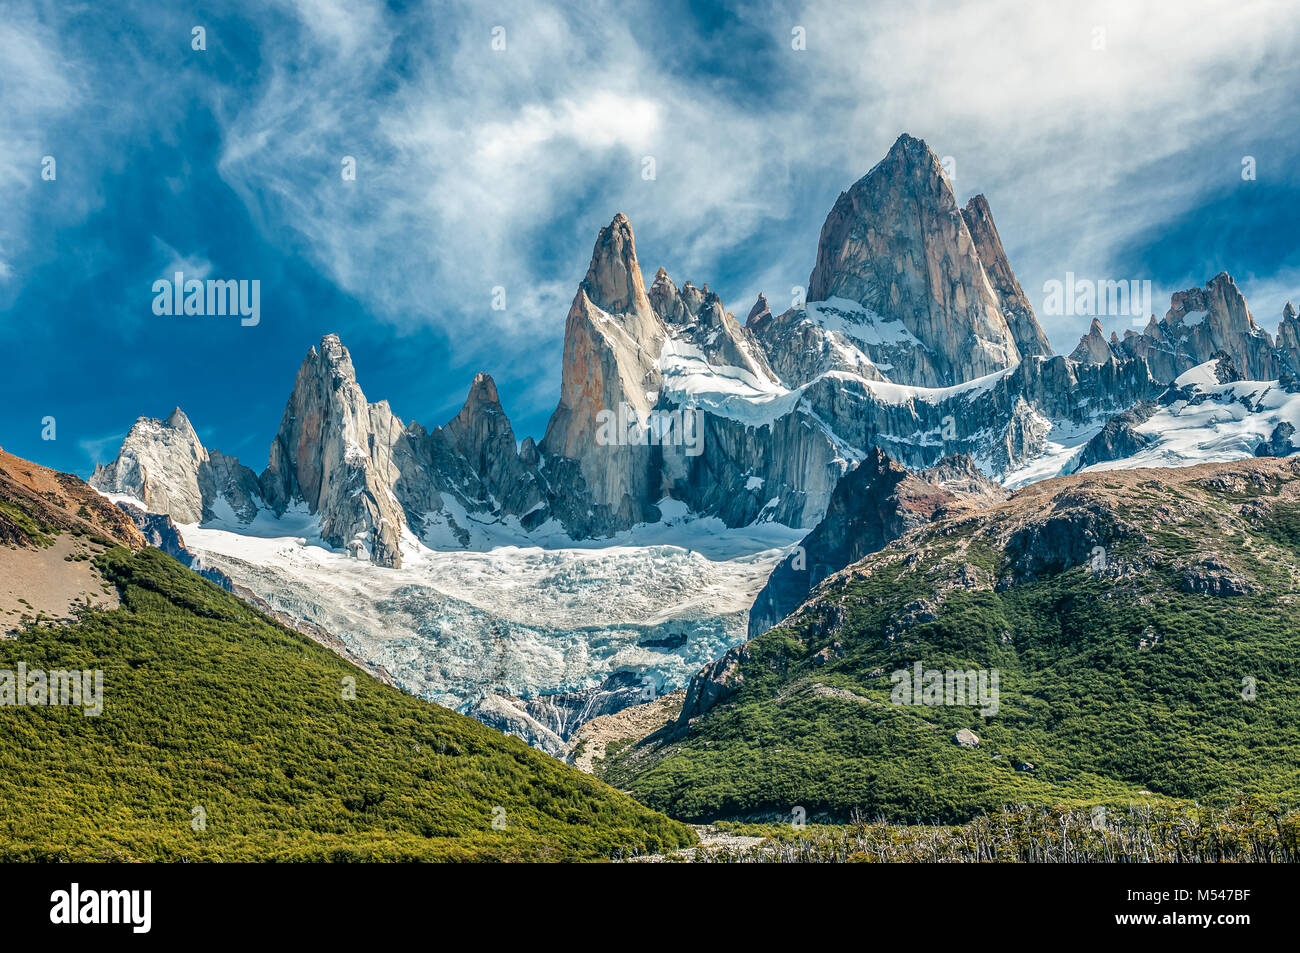 Fitz Roy mountain, El Chalten, Patagonia, Argentina Stock Photo